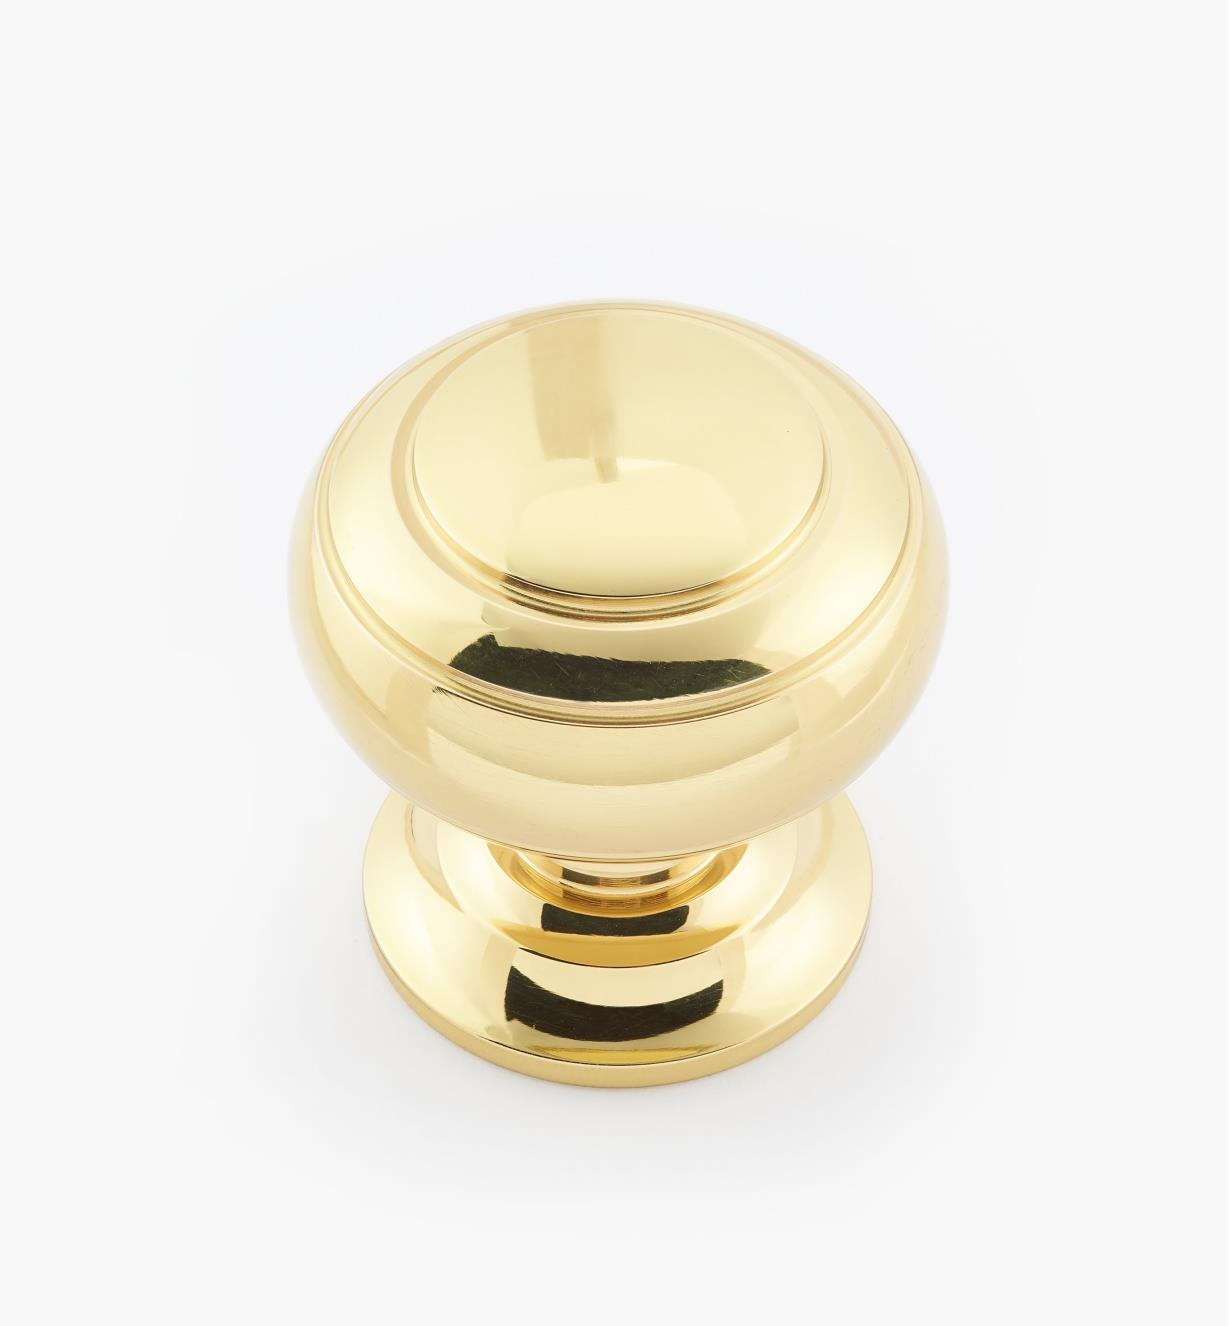 "02W3207 - Polished Brass Suite - 1 1/2"" x 1 1/2"" Turned Brass Ring Knob"